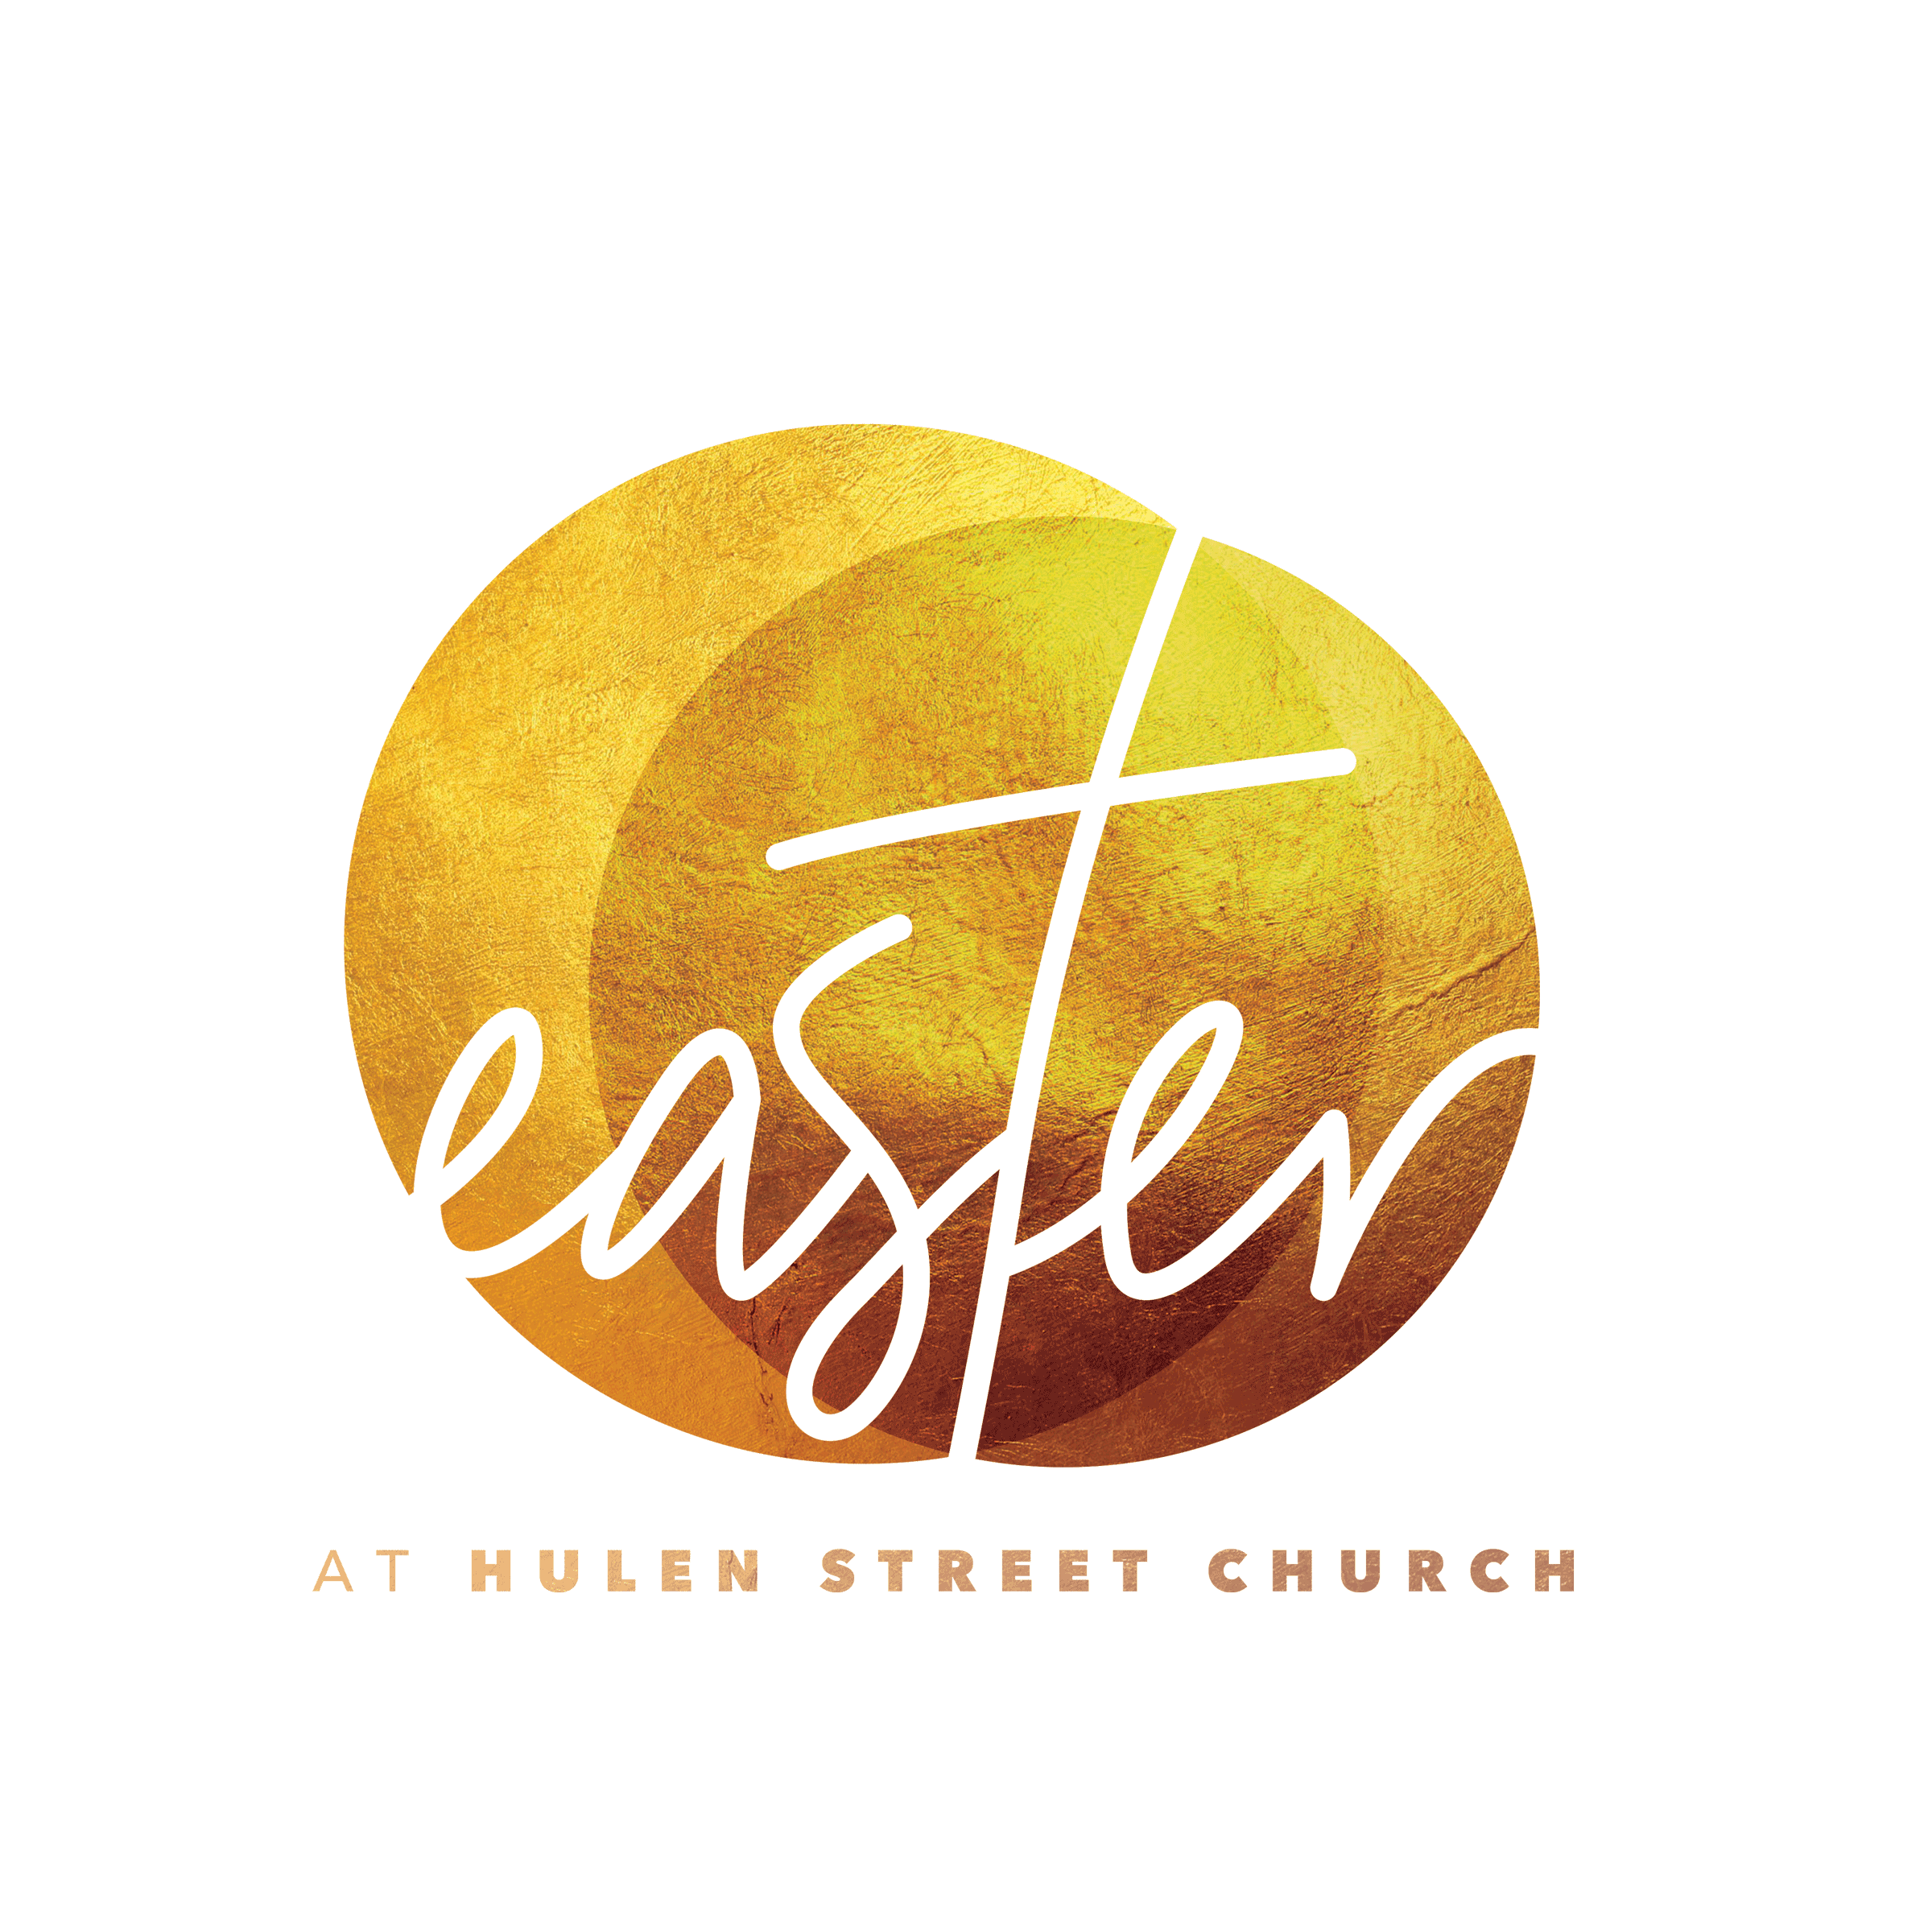 Easter 2018 is April 1 at Hulen Street Church in Fort Worth, TX with services at 8:00, 9:30 and 11:00am